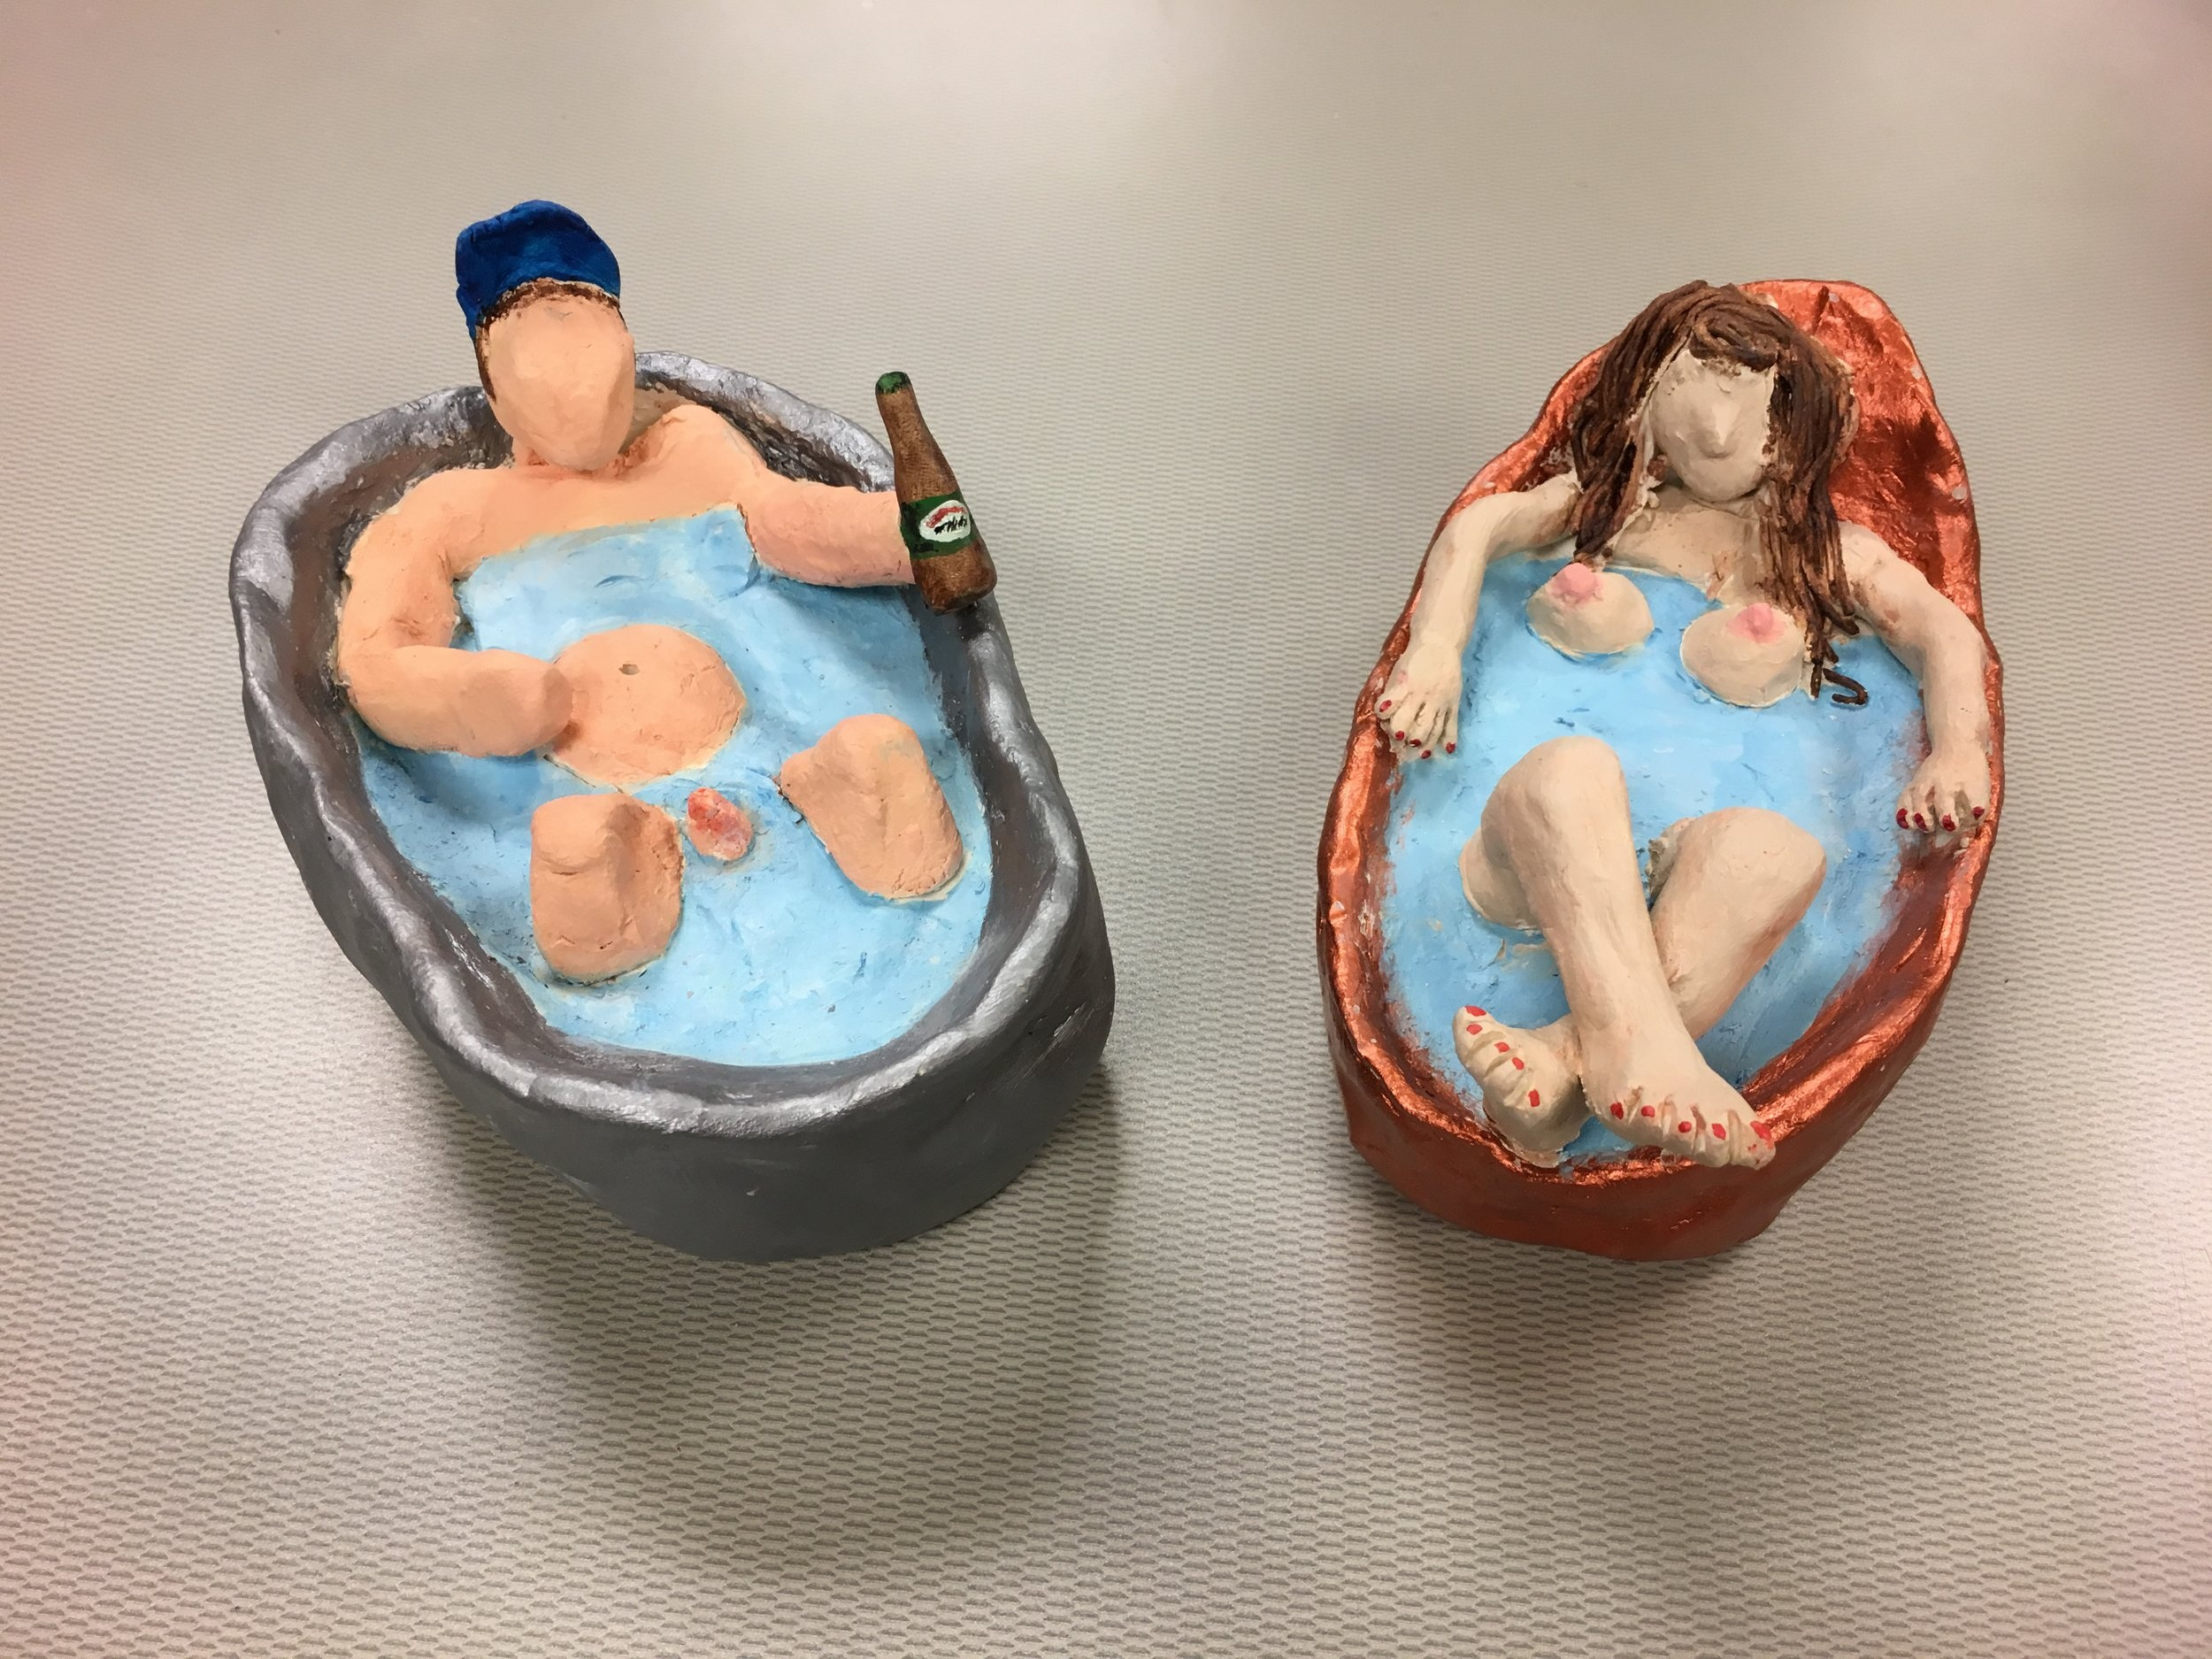 Photo Description: Two bathtubs side by side at an inwards angle. On the left side is a man in silver bathtub a beer and wearing a blue jays cap; on the right is a woman in a rose gold tub with her legs crossed.